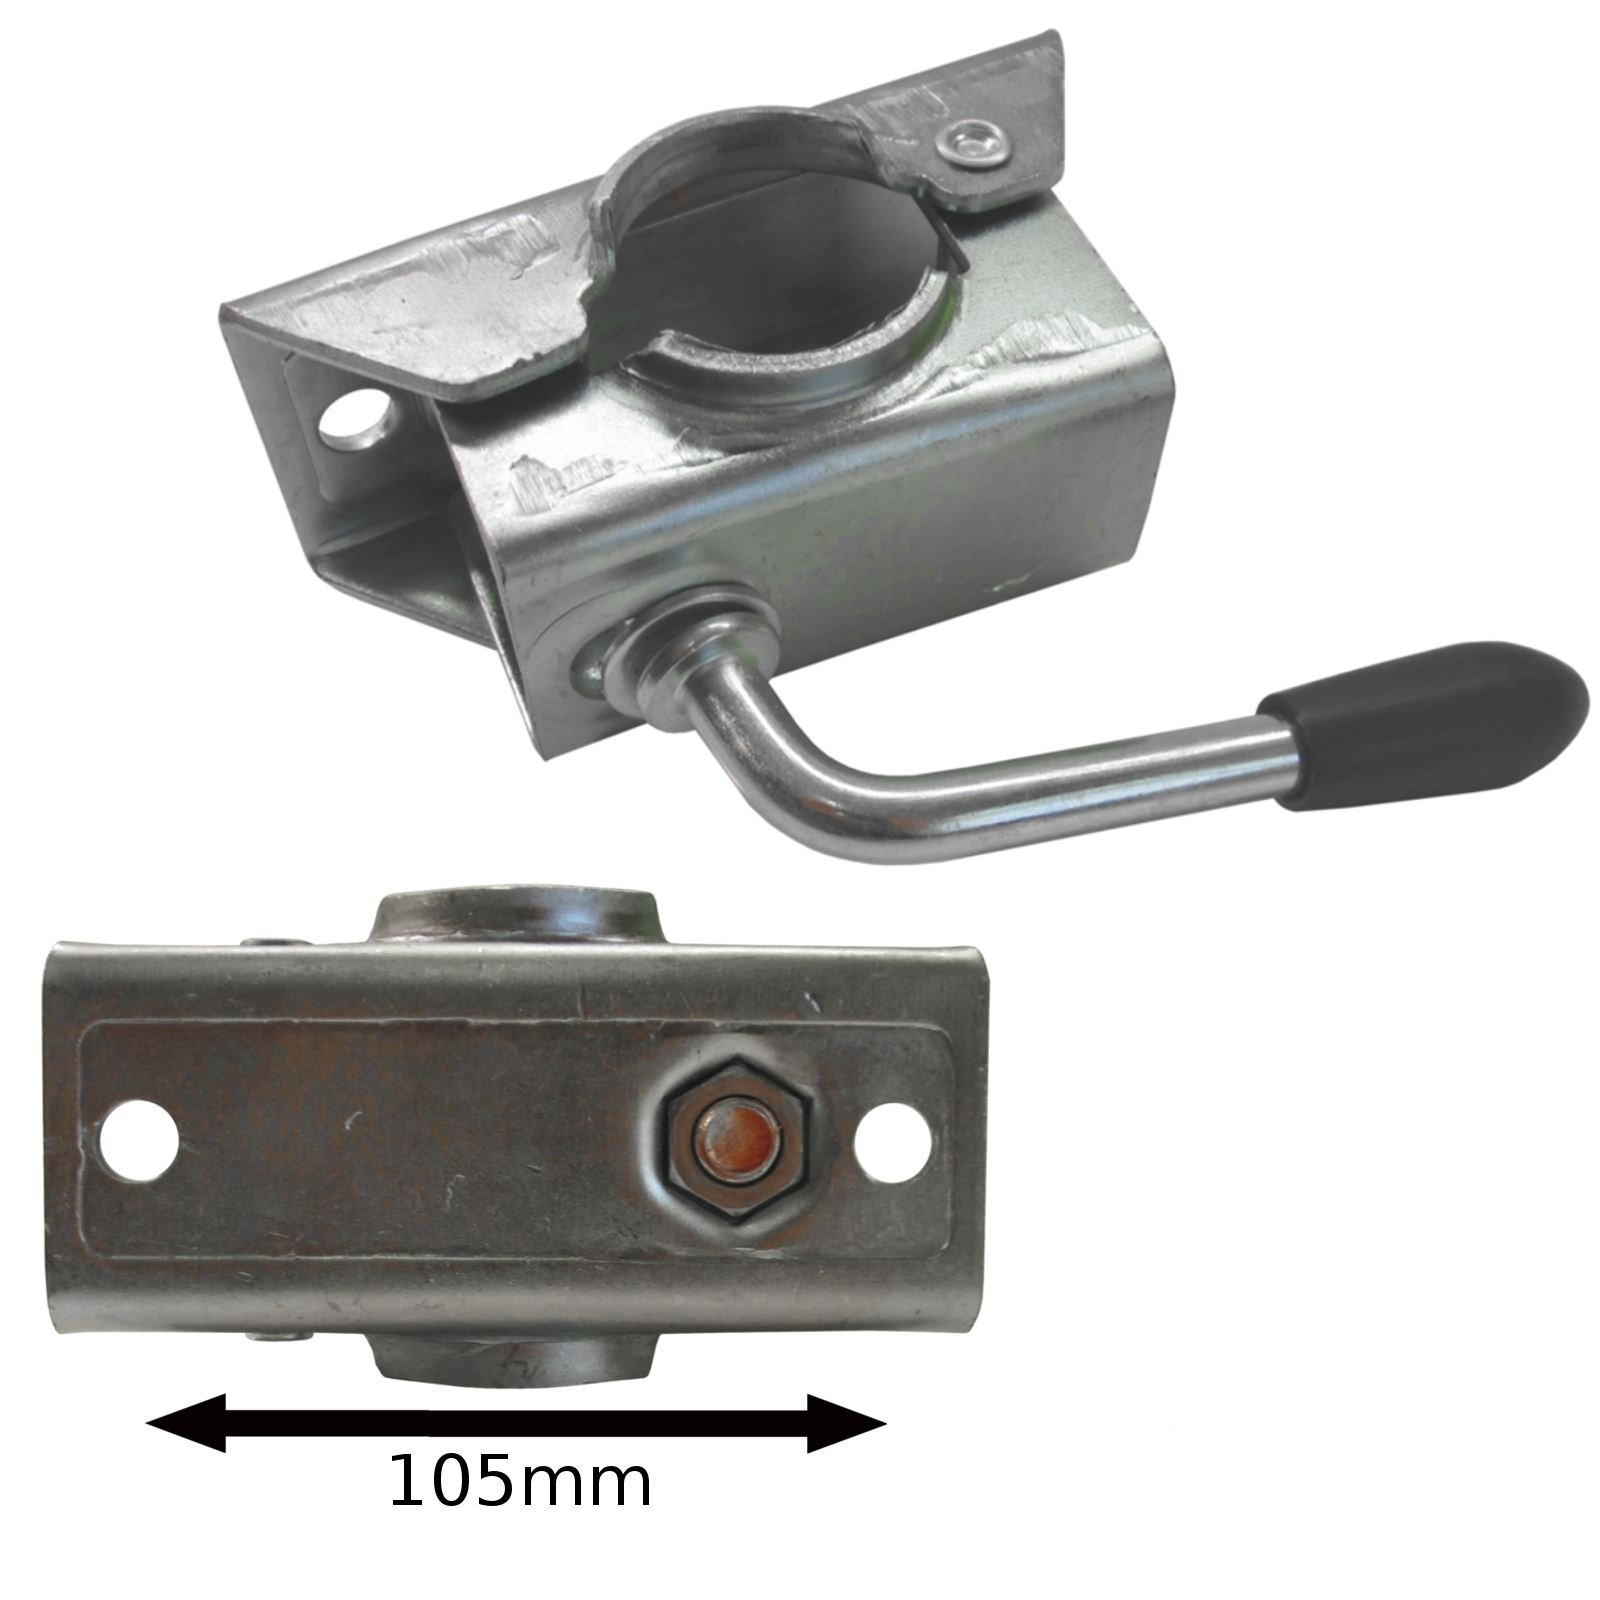 AB Tools-Maypole 42mm Clamp for Jockey Wheel/Prop Stand TR023 by AB Tools-Maypole